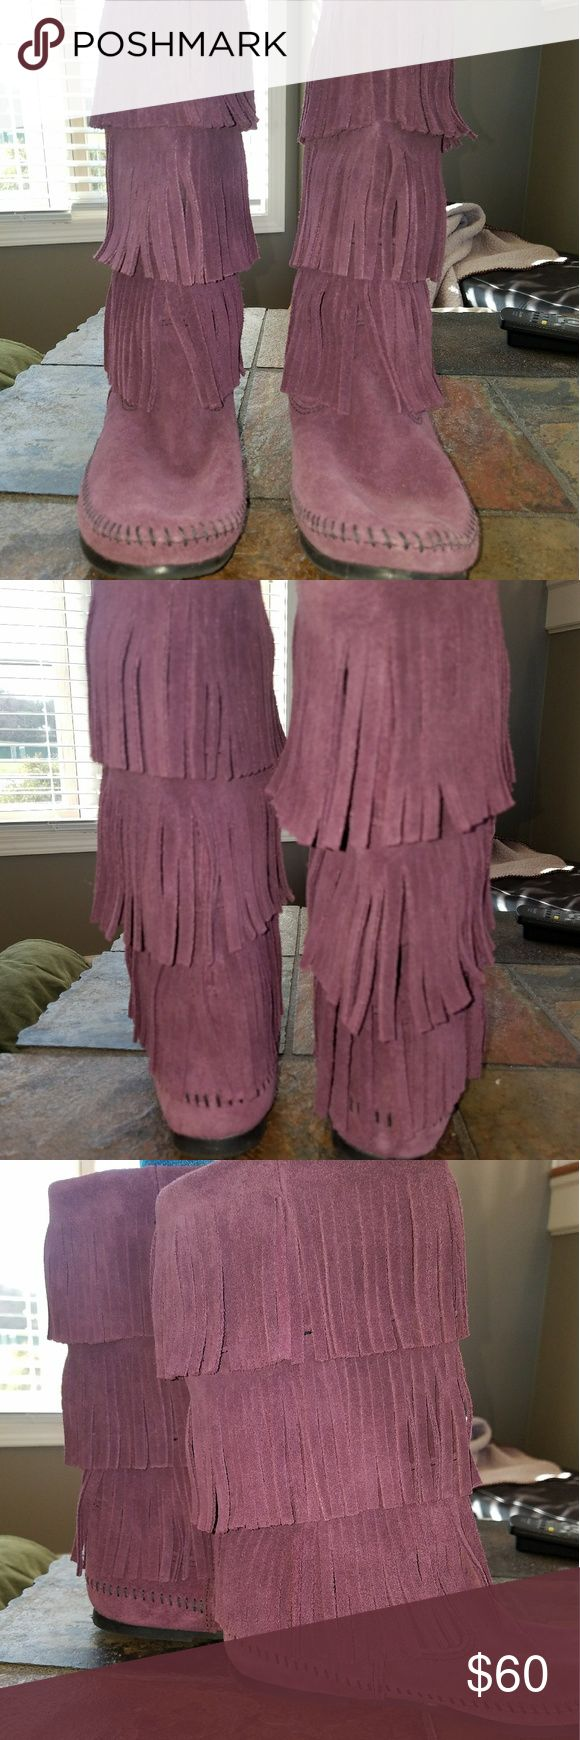 "Minnetonka 3 Layer Fringe Boot Nice beautiful Minnetonka 3 layer fringe boots. They're a nice grape color. Made of soft sturdy suede material. These boots are brand new, they were only worn a few times. They say size 9 but they fit like a size 8. ""Wear these famous and versatile boots with your favorite mini skirt, leggings or skinny jeans-just like trendsetters and fashionistas everywhere. The three layers of suede fringe wrap all the way around and meet you mid-calf."" Minnetonka Shoes"